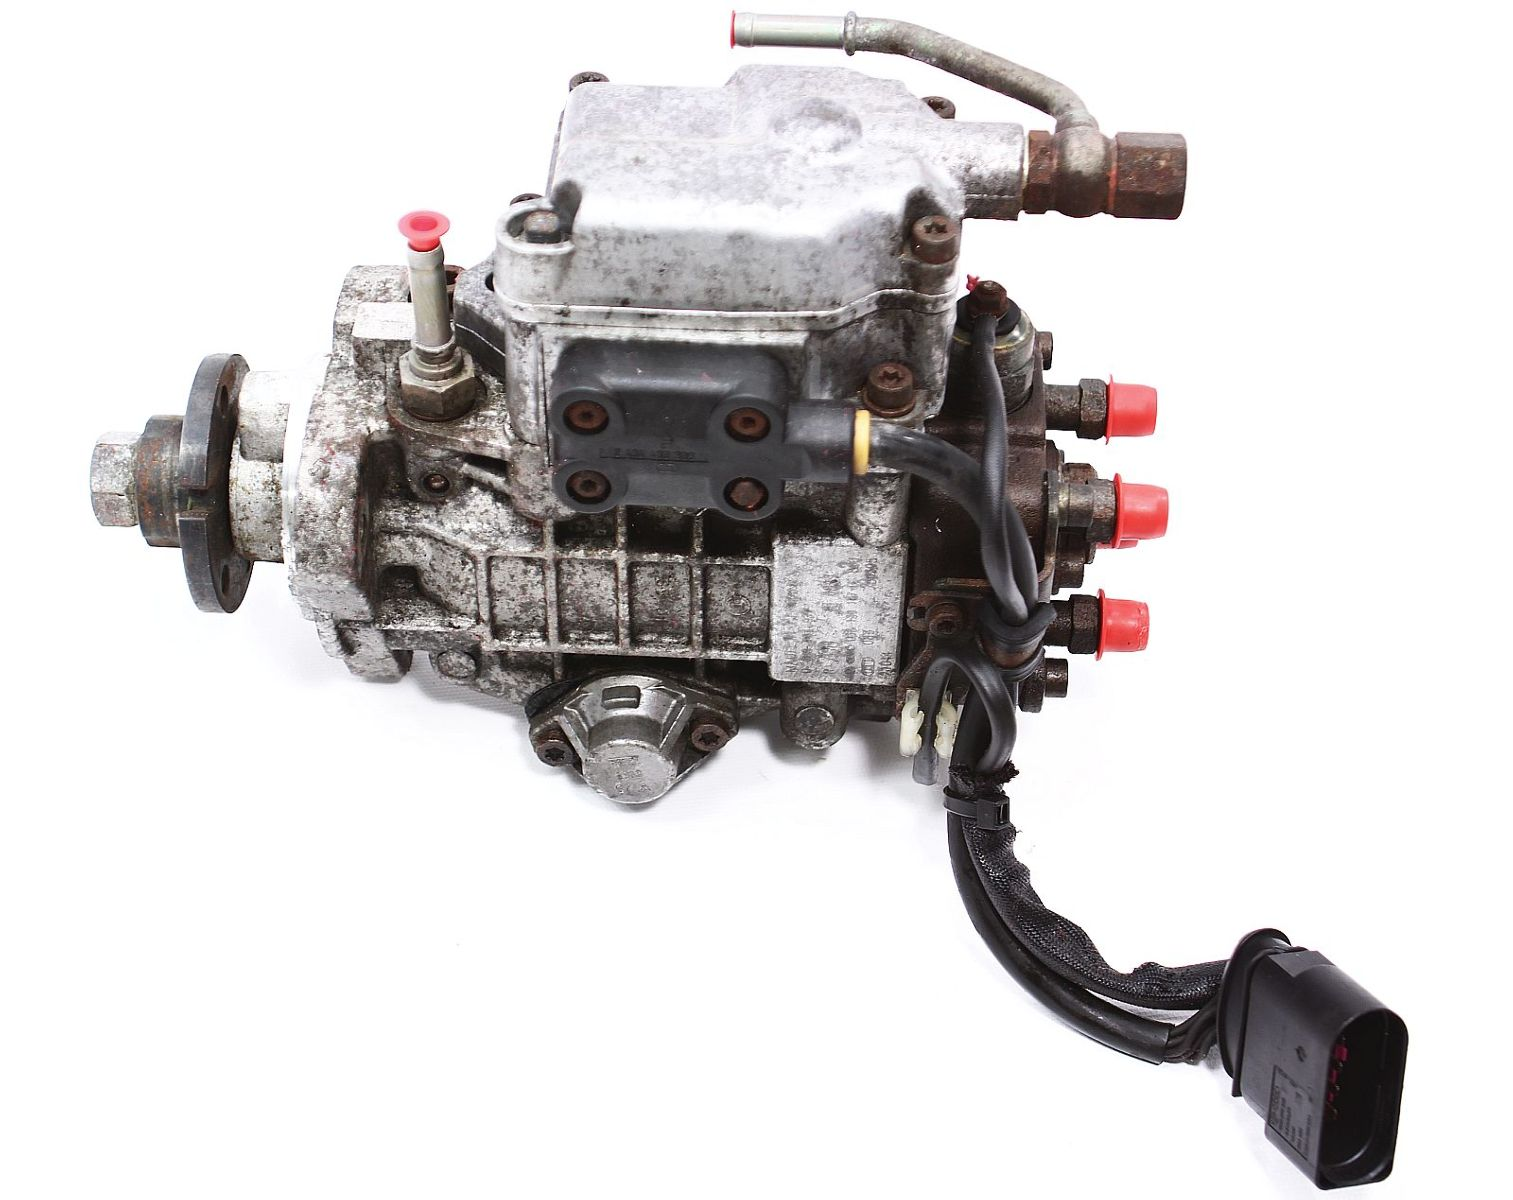 1 9 tdi fuel pump location  1  get free image about wiring